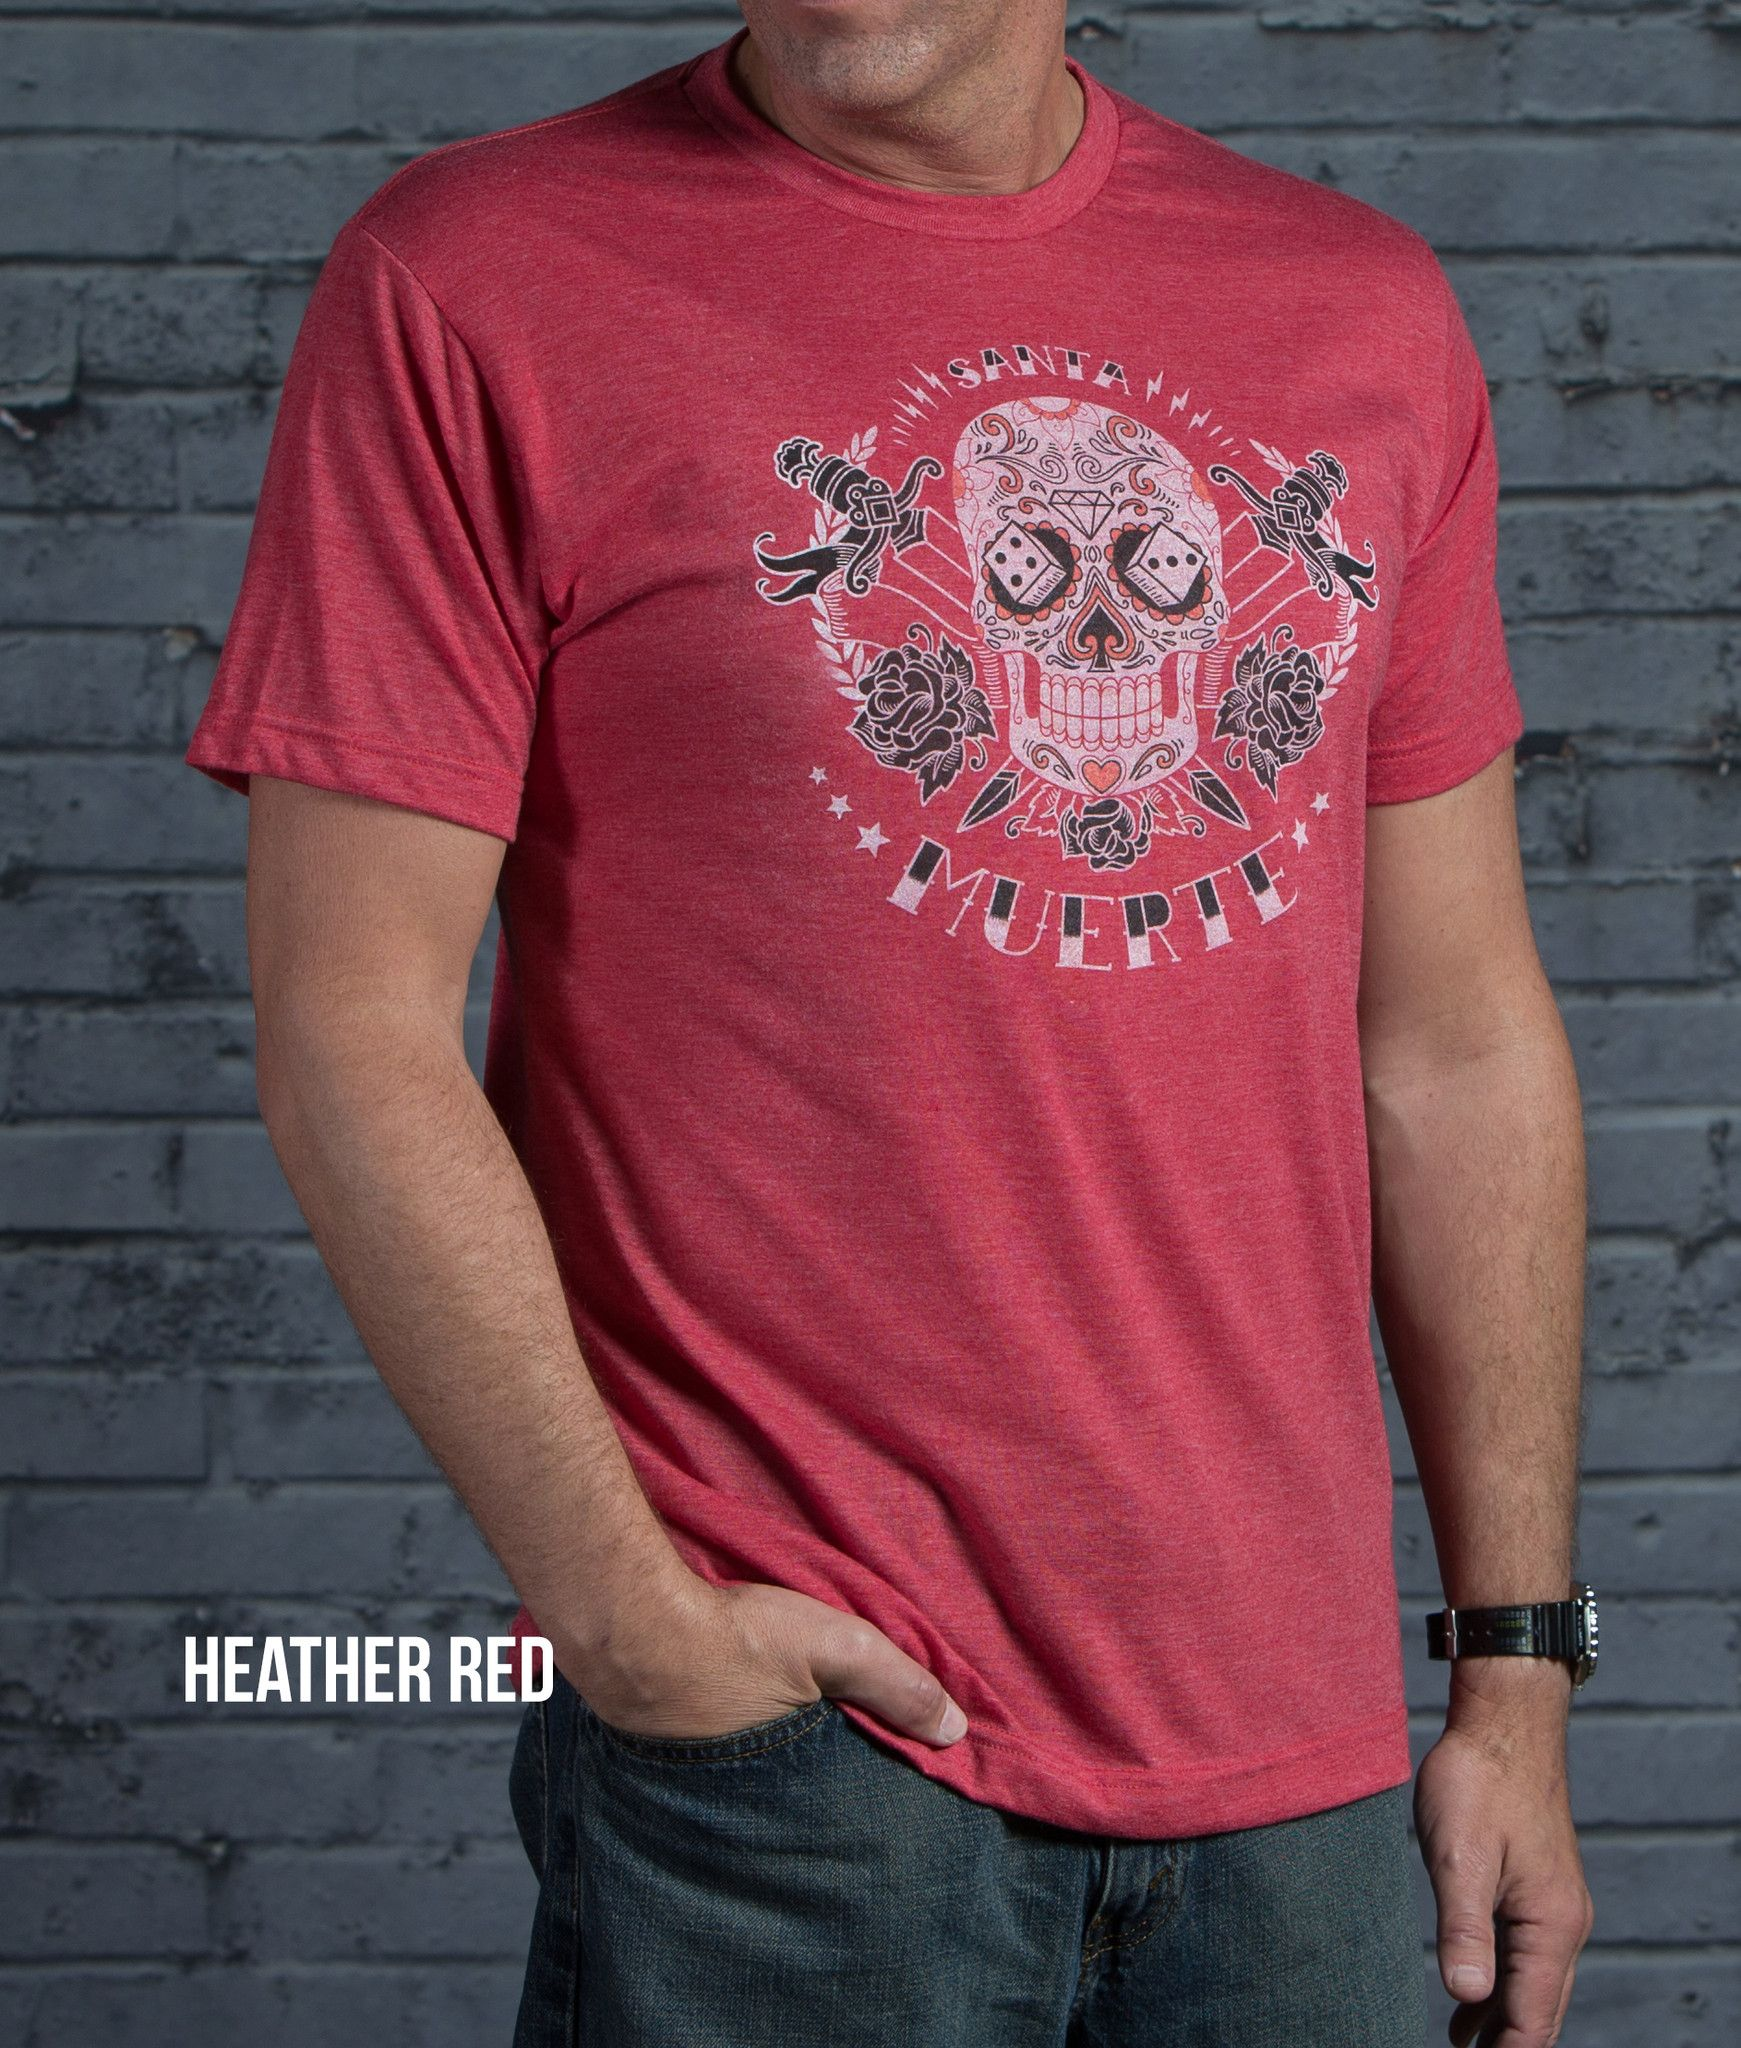 Super Soft 65% Polyester 35% Cotton, Lightweight, Athletic Cut, Vintage Graphic T. Fits True To Size. In 4 Vintage Colors.